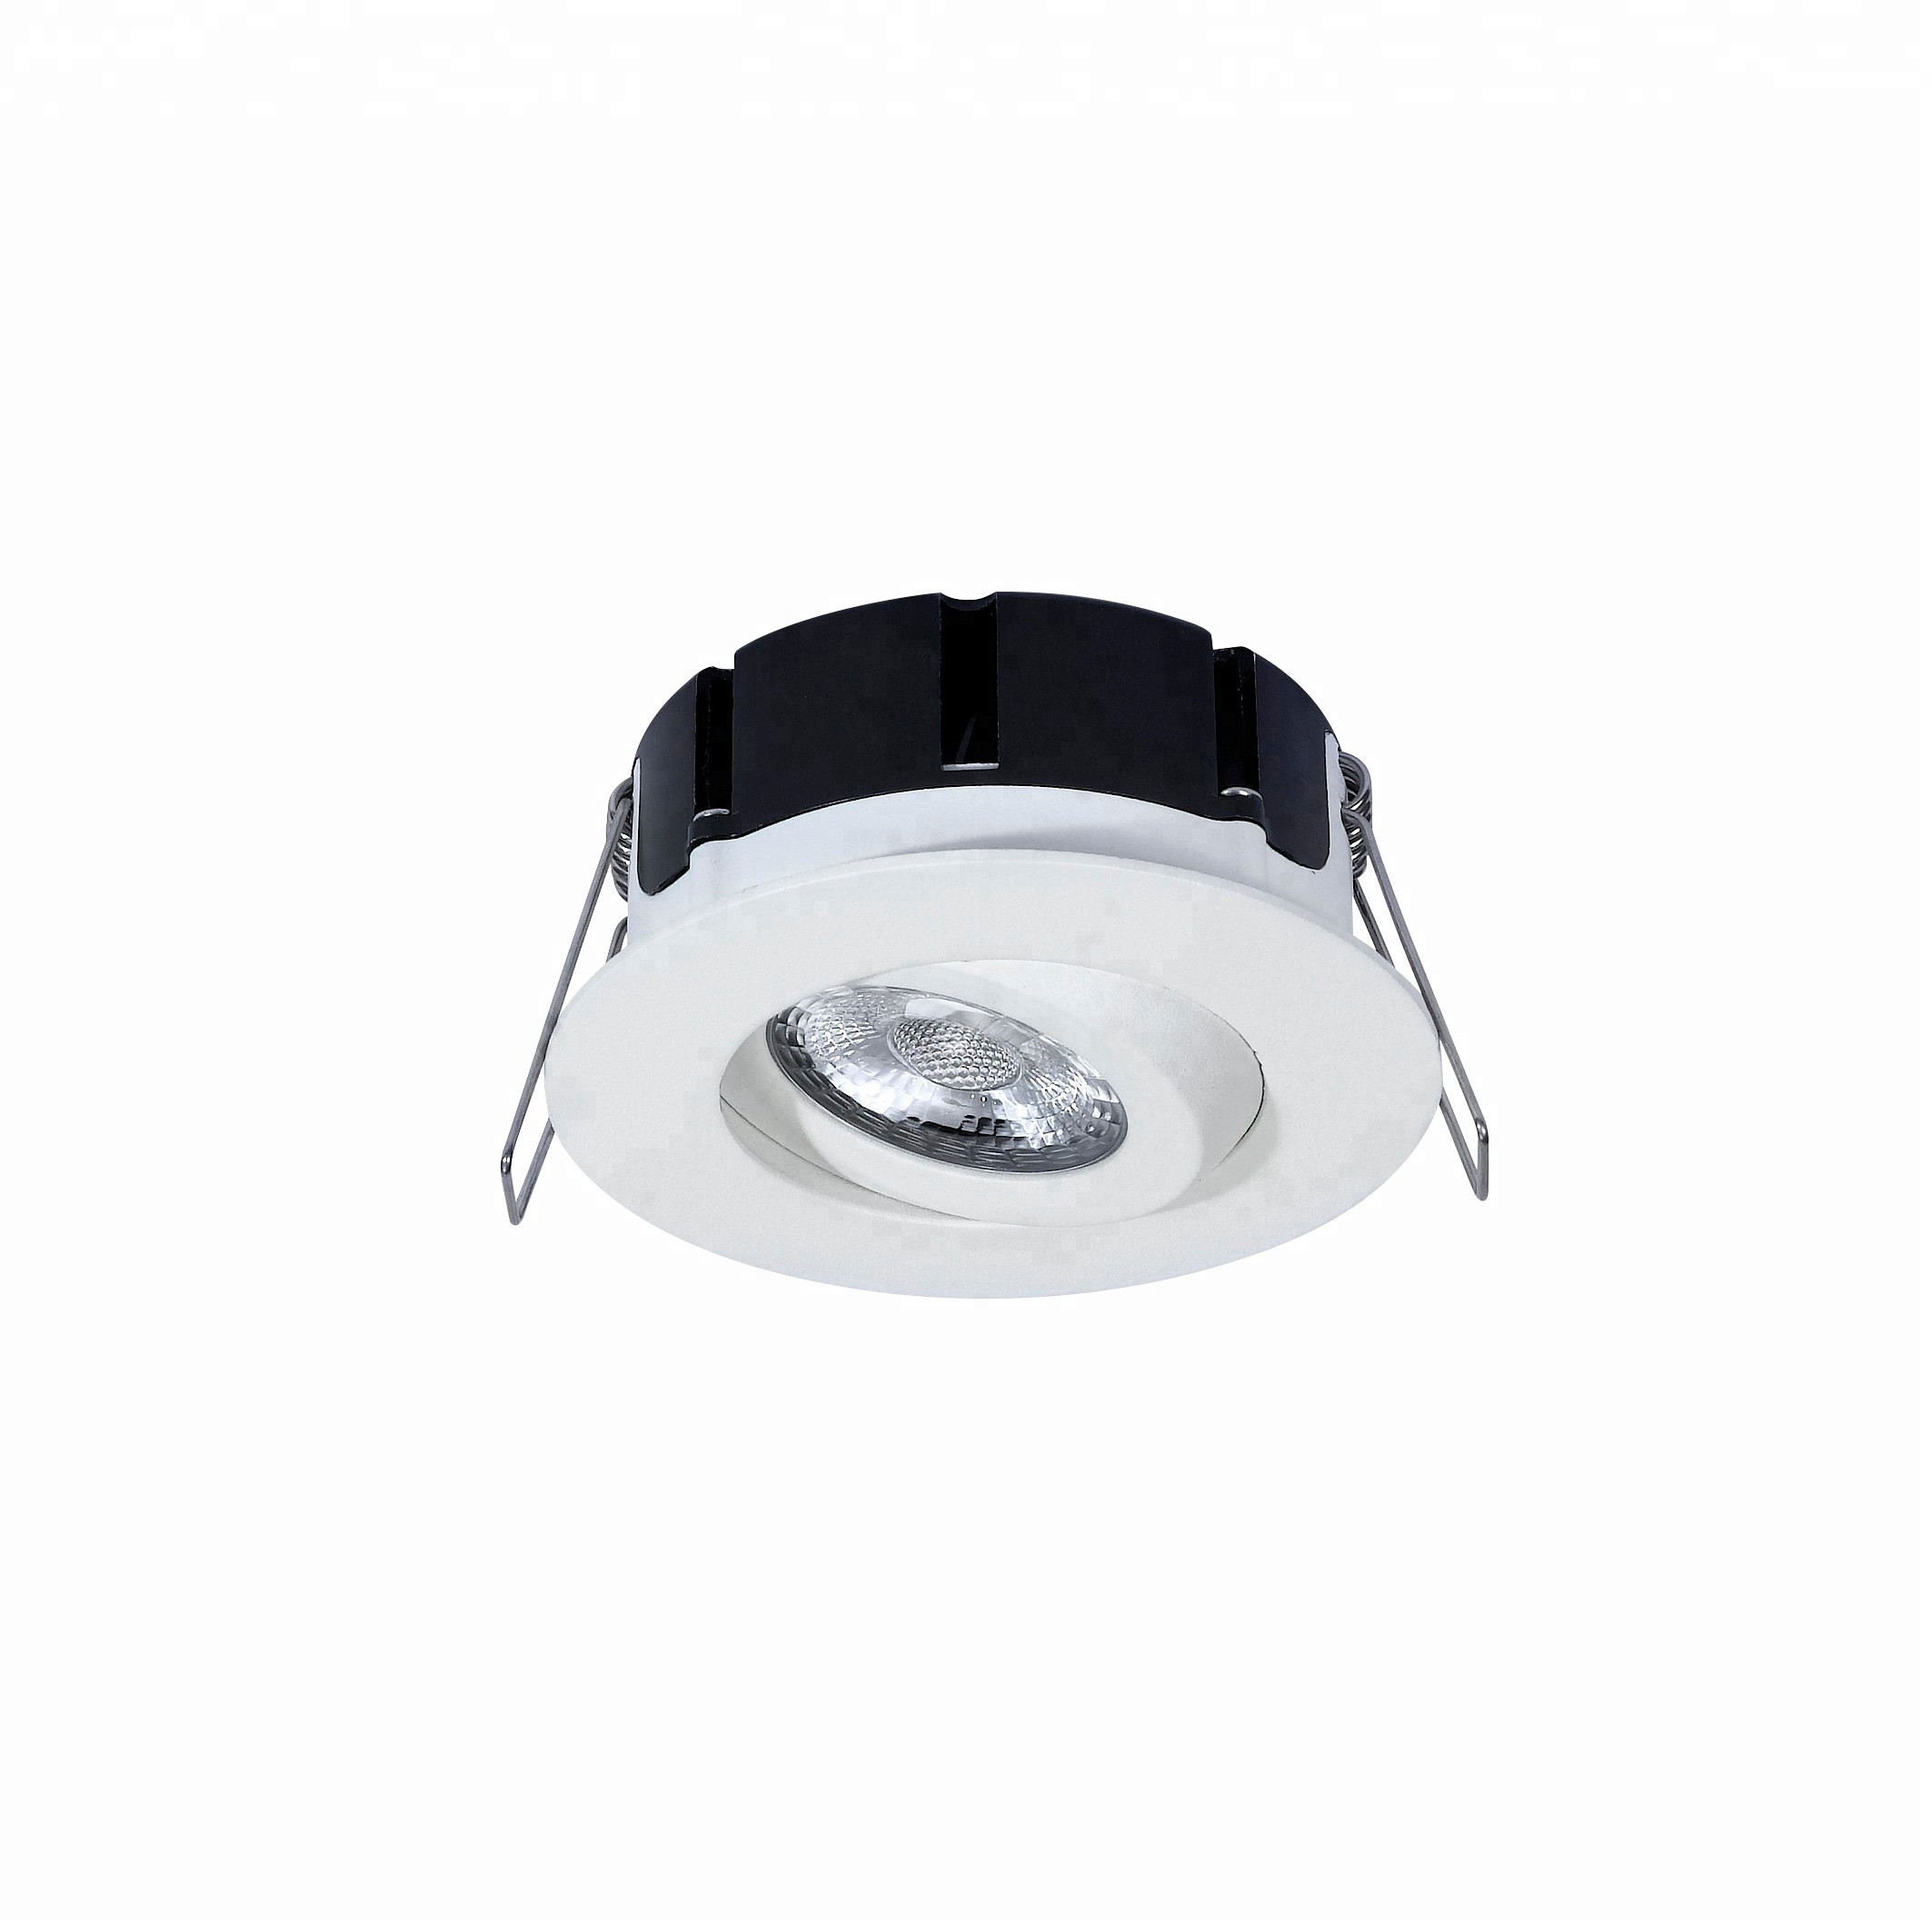 White Round Dimmable Small Waterproof Ip65 Led Bathroom Lights Buy Led Bathroom Lights Ip65 Bathroom Lights Waterproof Bathroom Light Product On